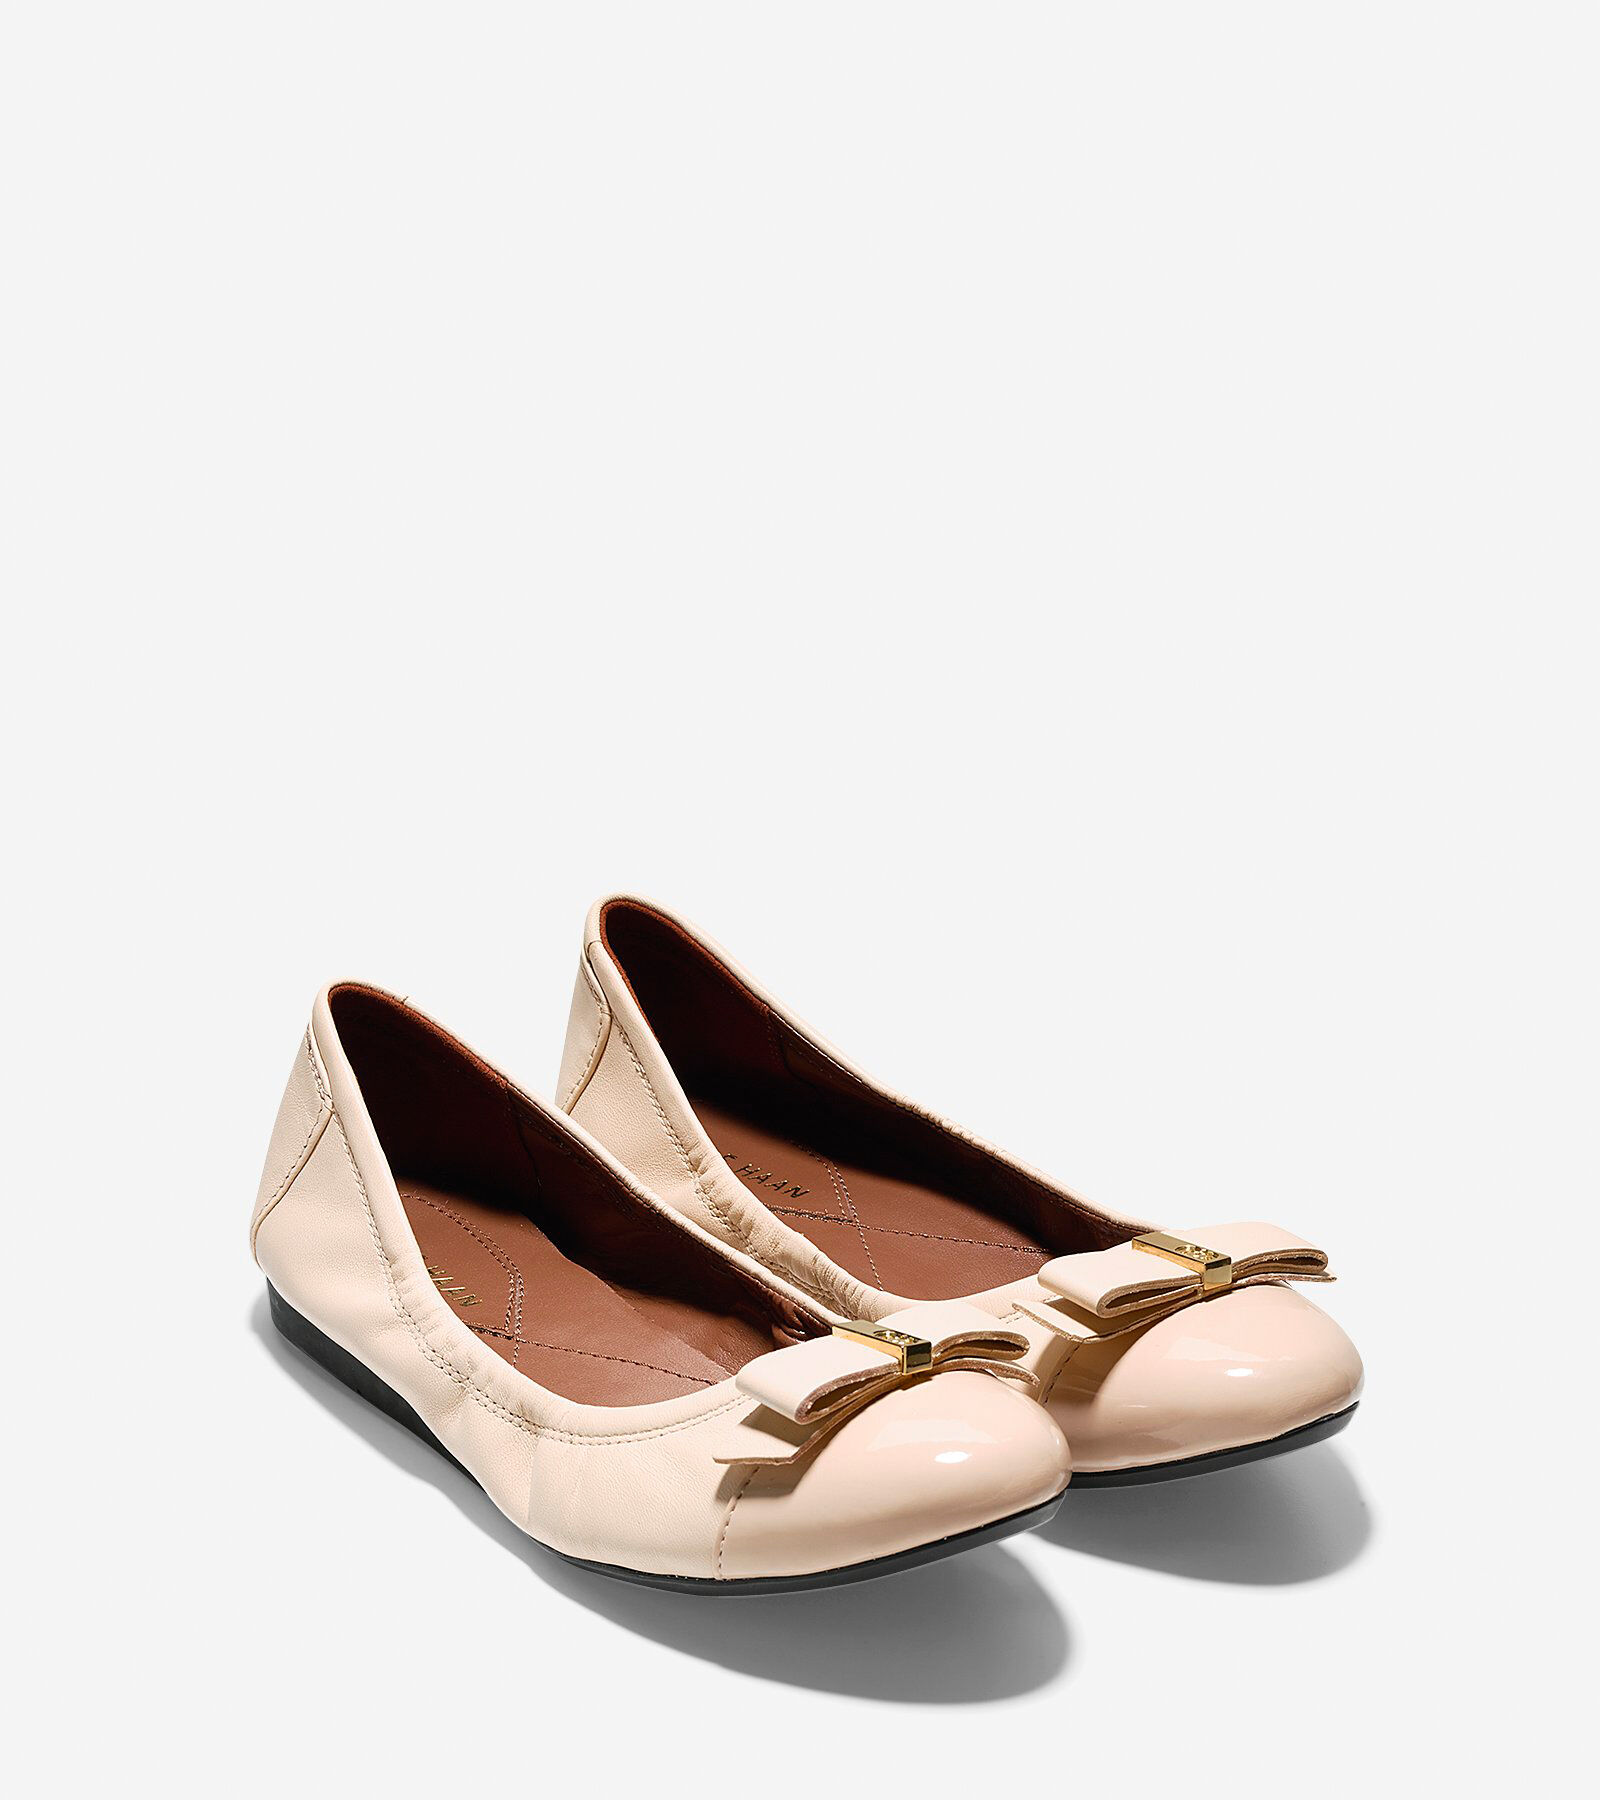 Cole Haan Patent Bow Flats